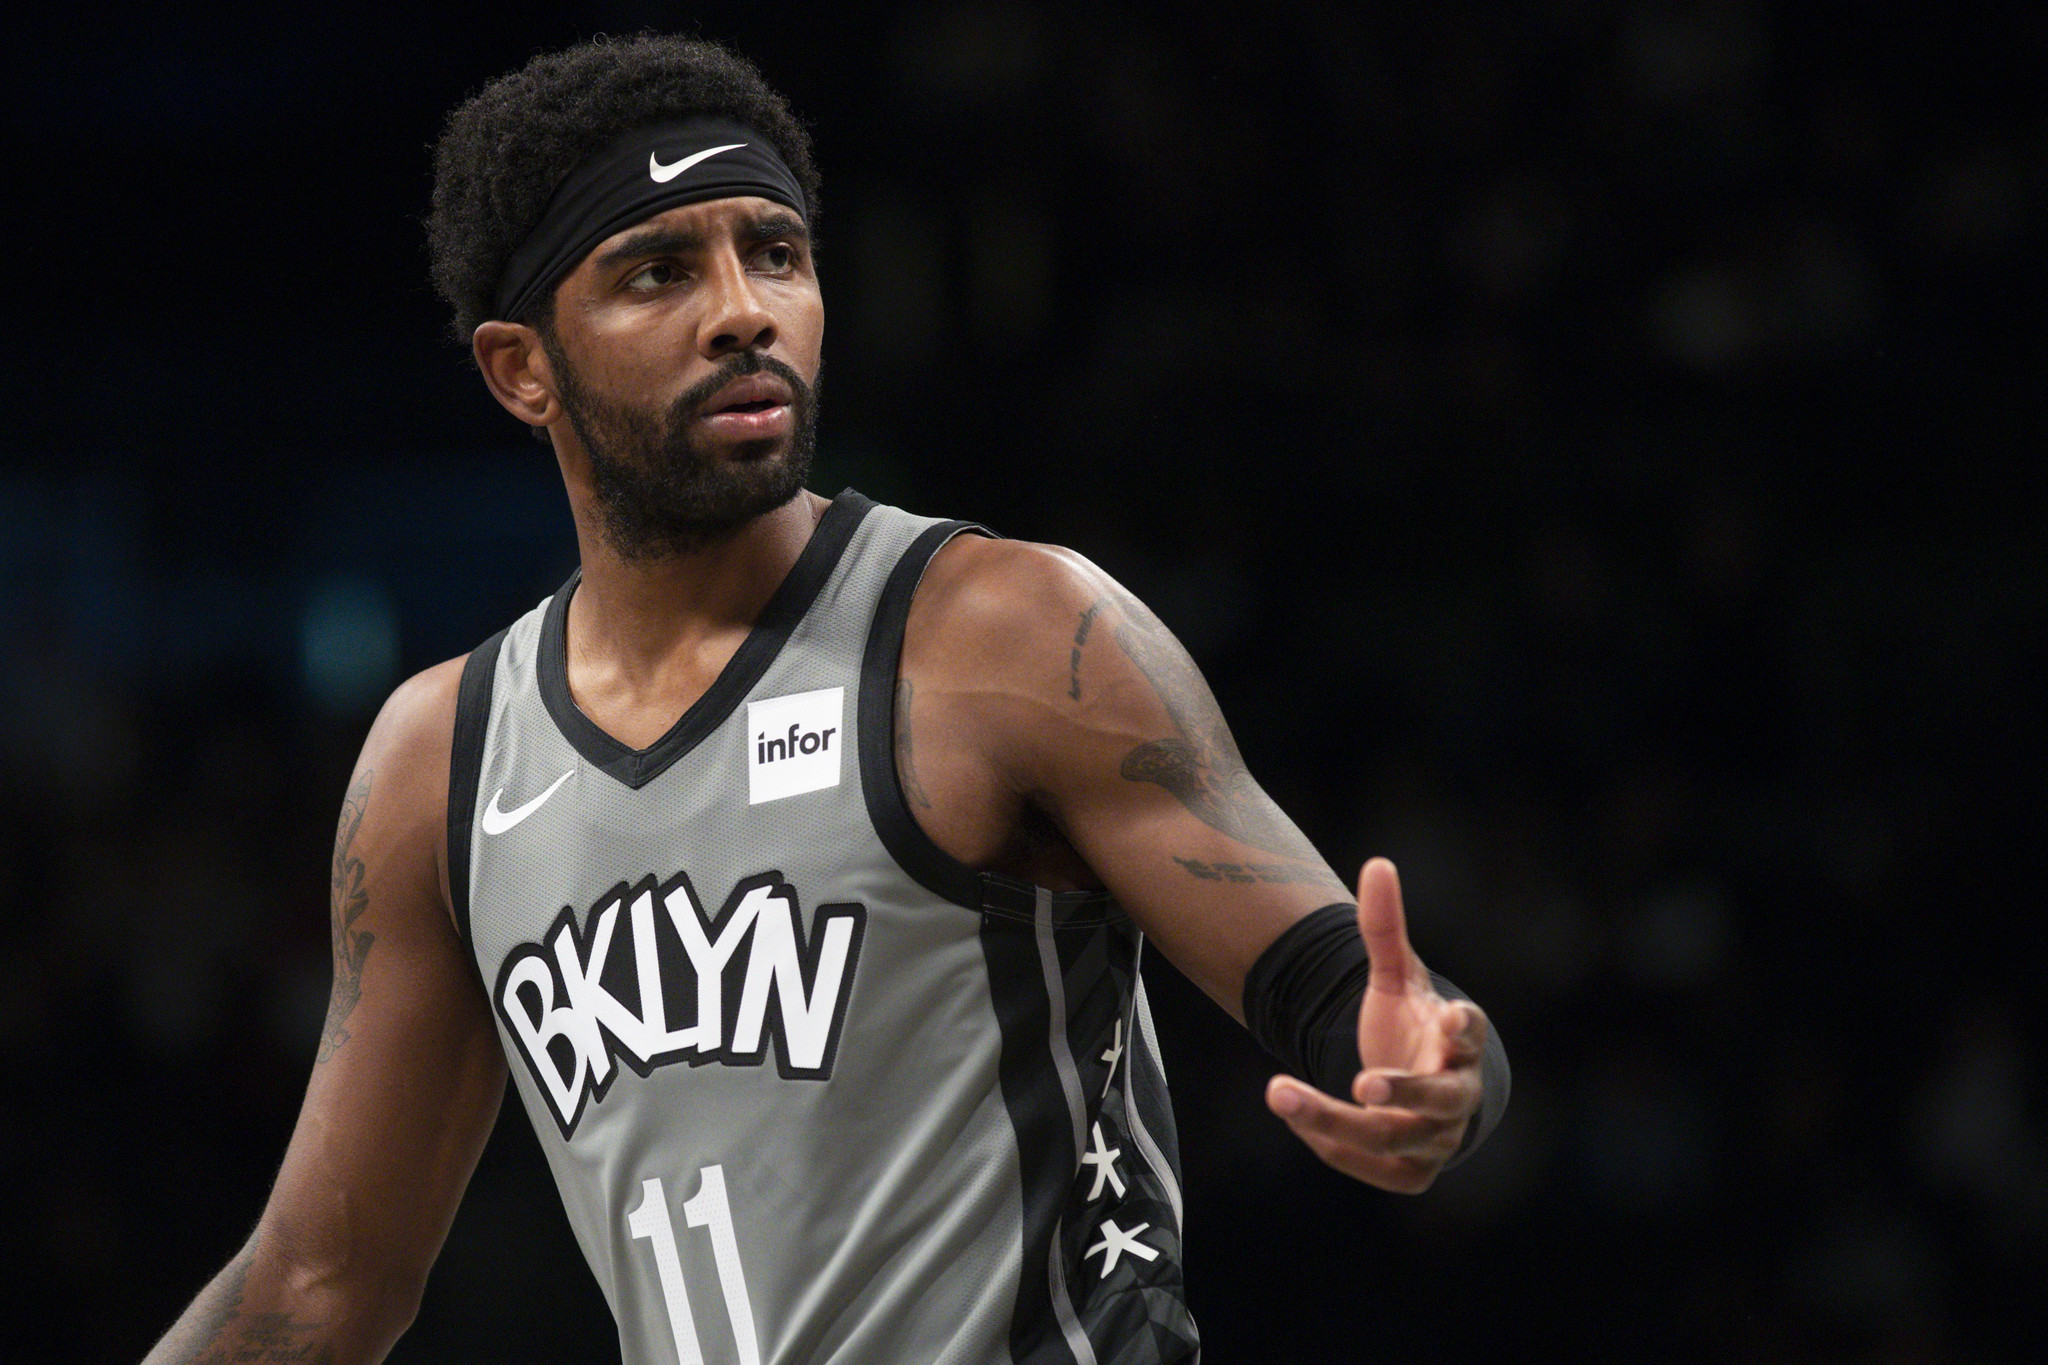 Kyrie Irving and Caris LeVert are progressing, but not ready yet